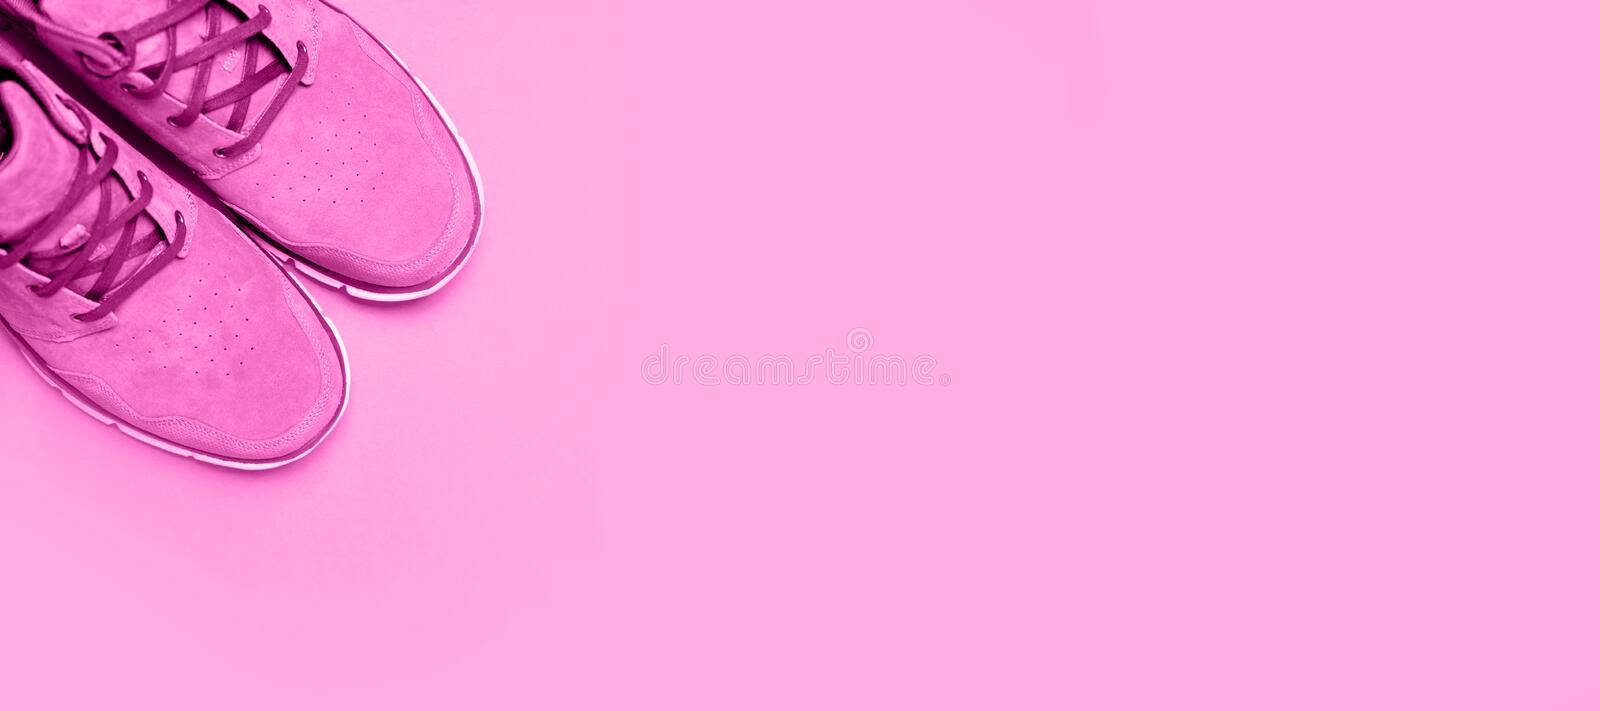 Pink Woman boots on pink background. Copyspace, flat lay. stock photo